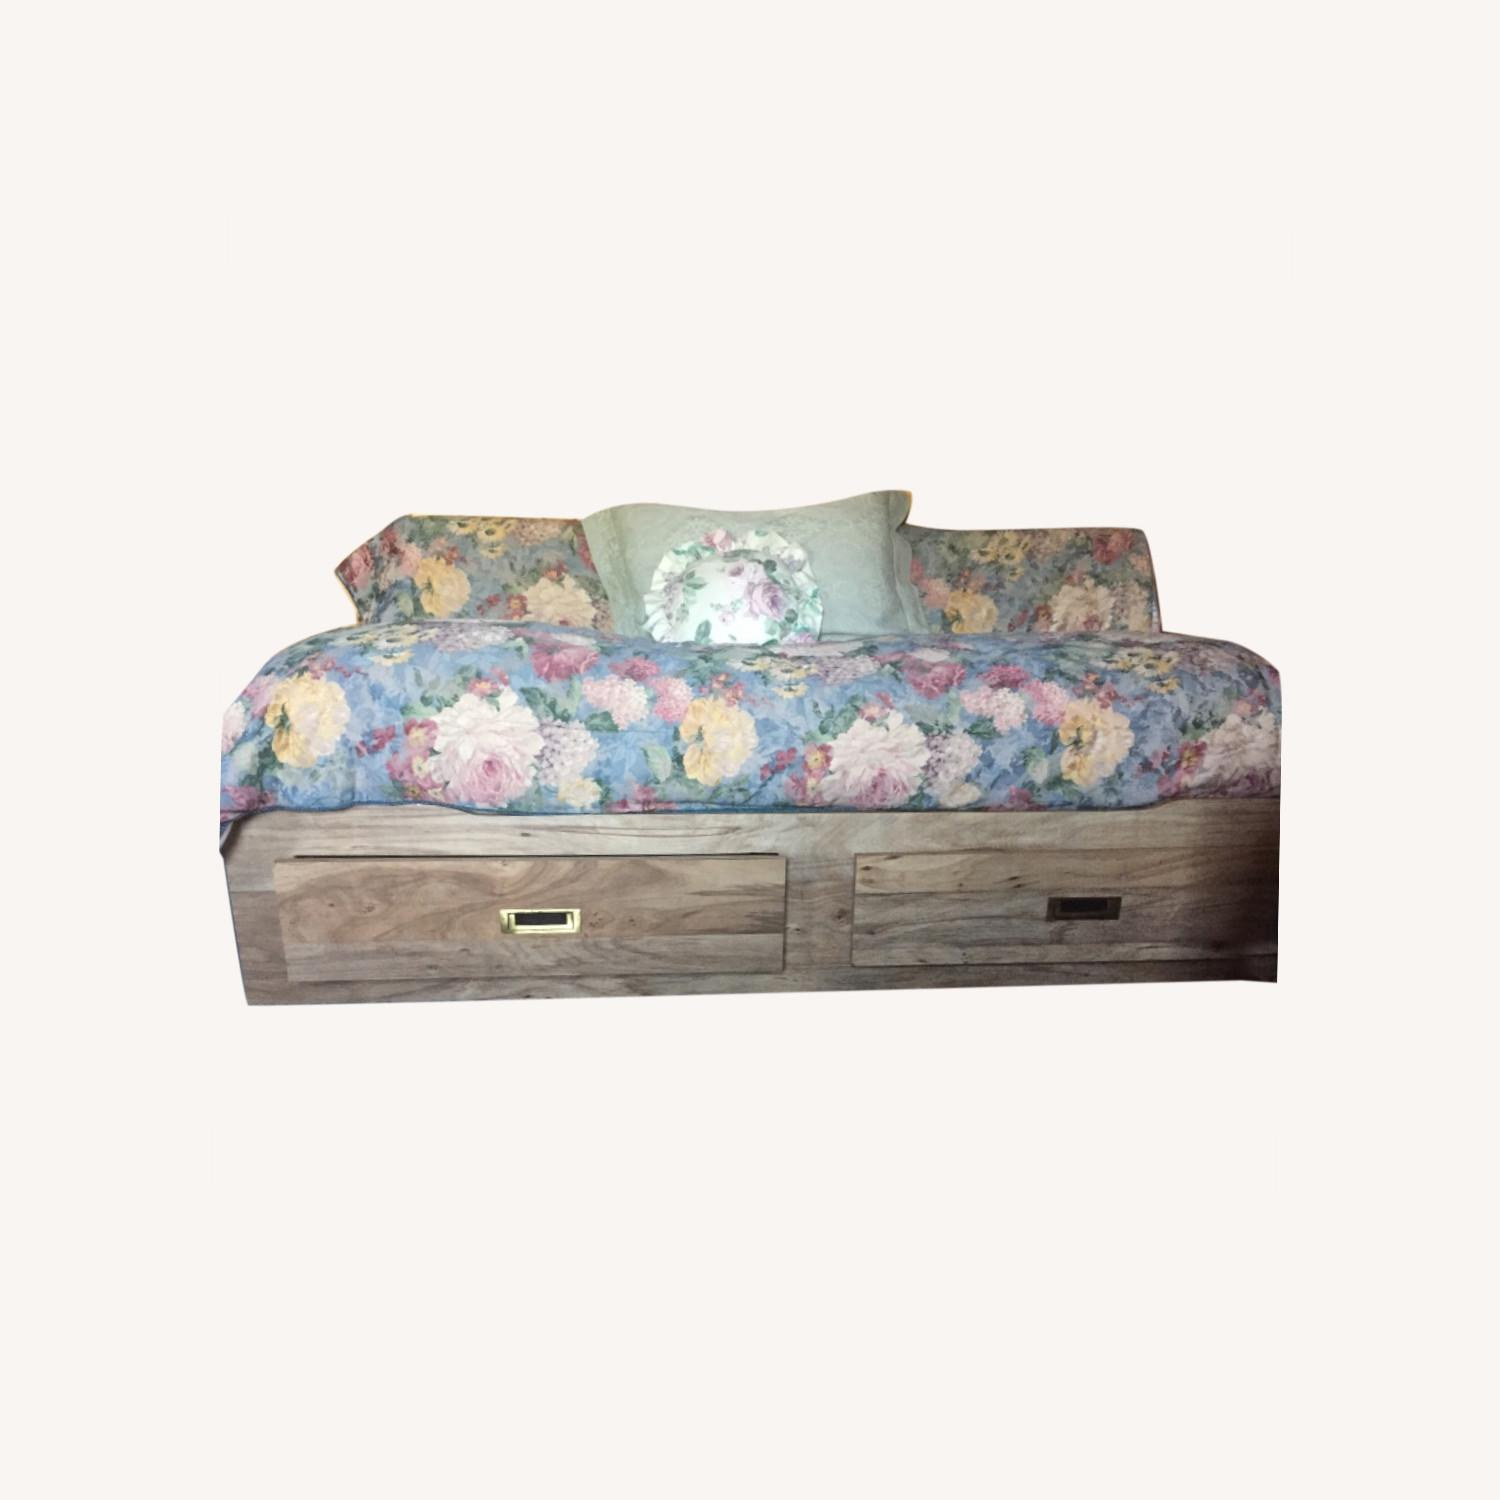 Twin Captain / Platform Bed with 2 Drawers - image-0